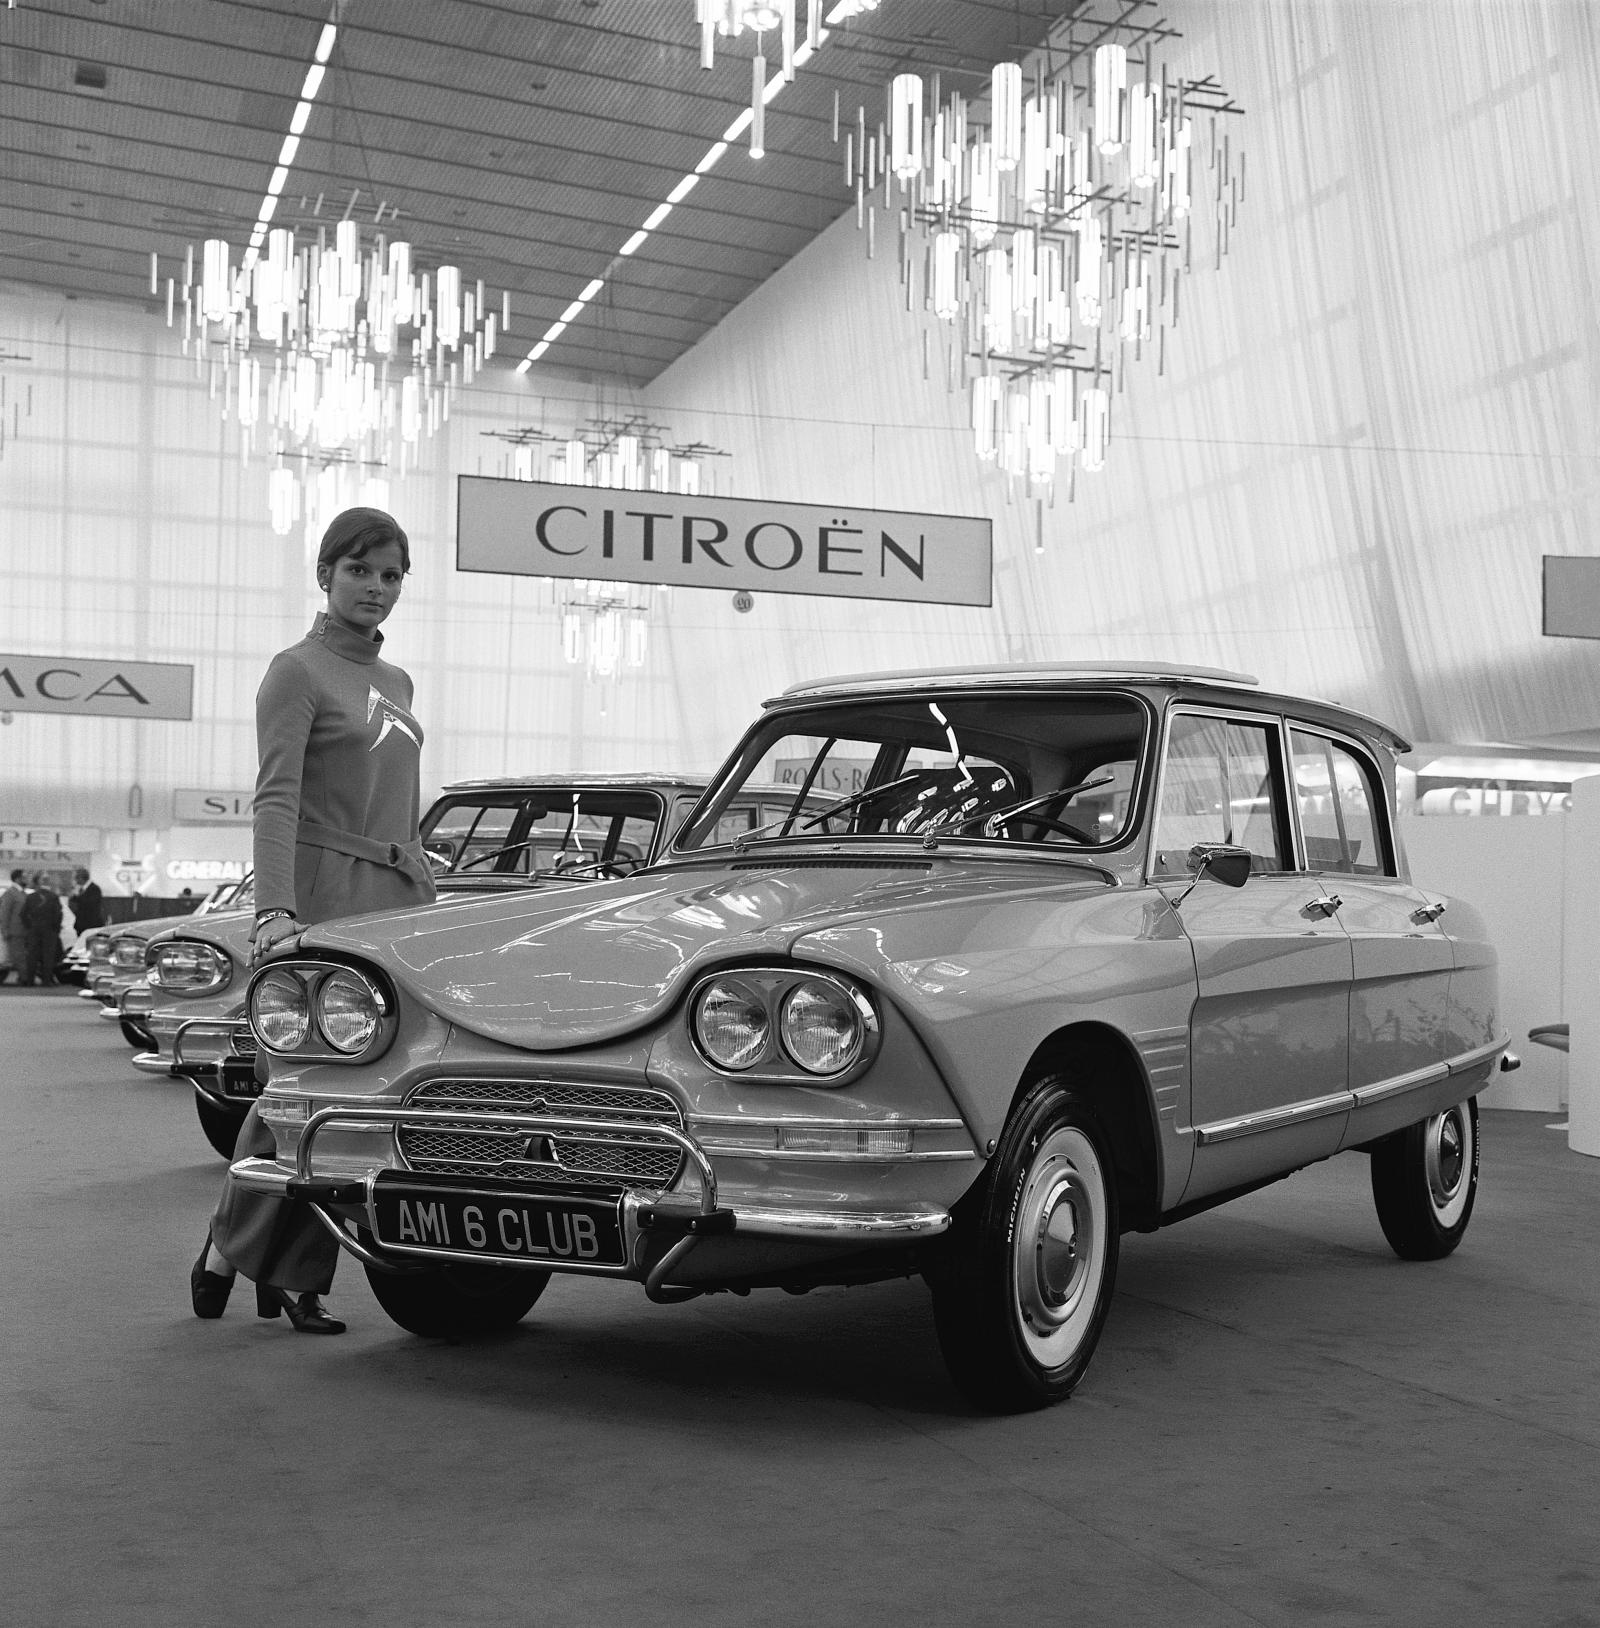 AMI 6 Club - Salon de l'automobile 1966